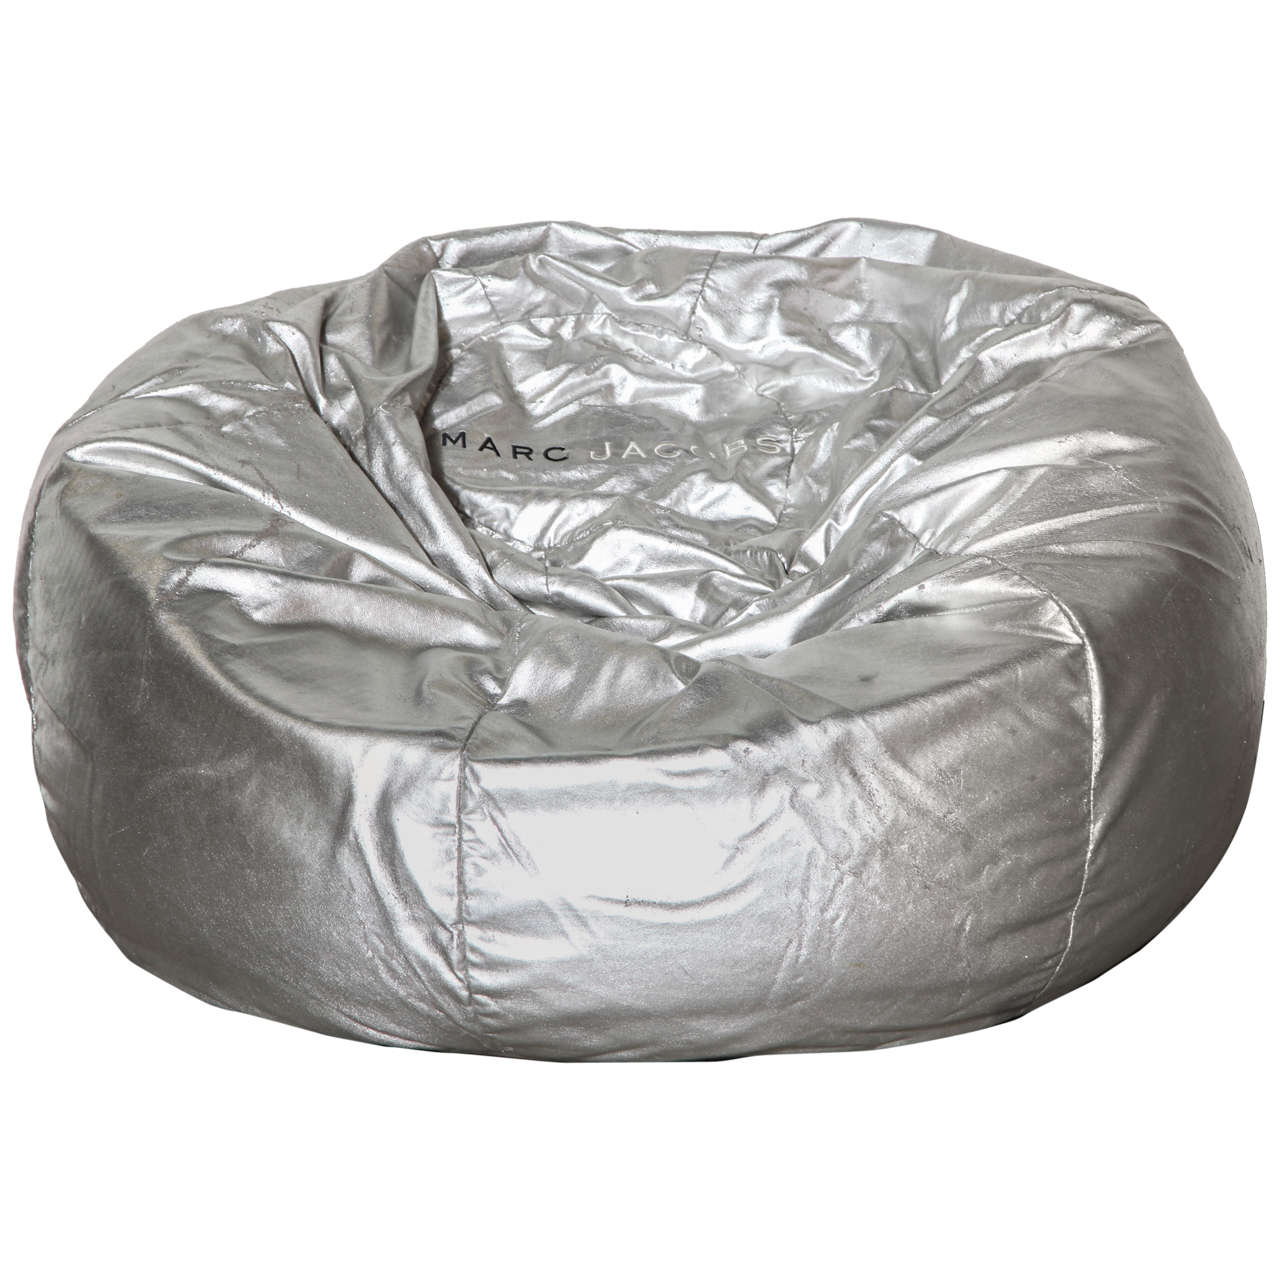 Marc Jacobs Silver Leather Bean Bag For Sale